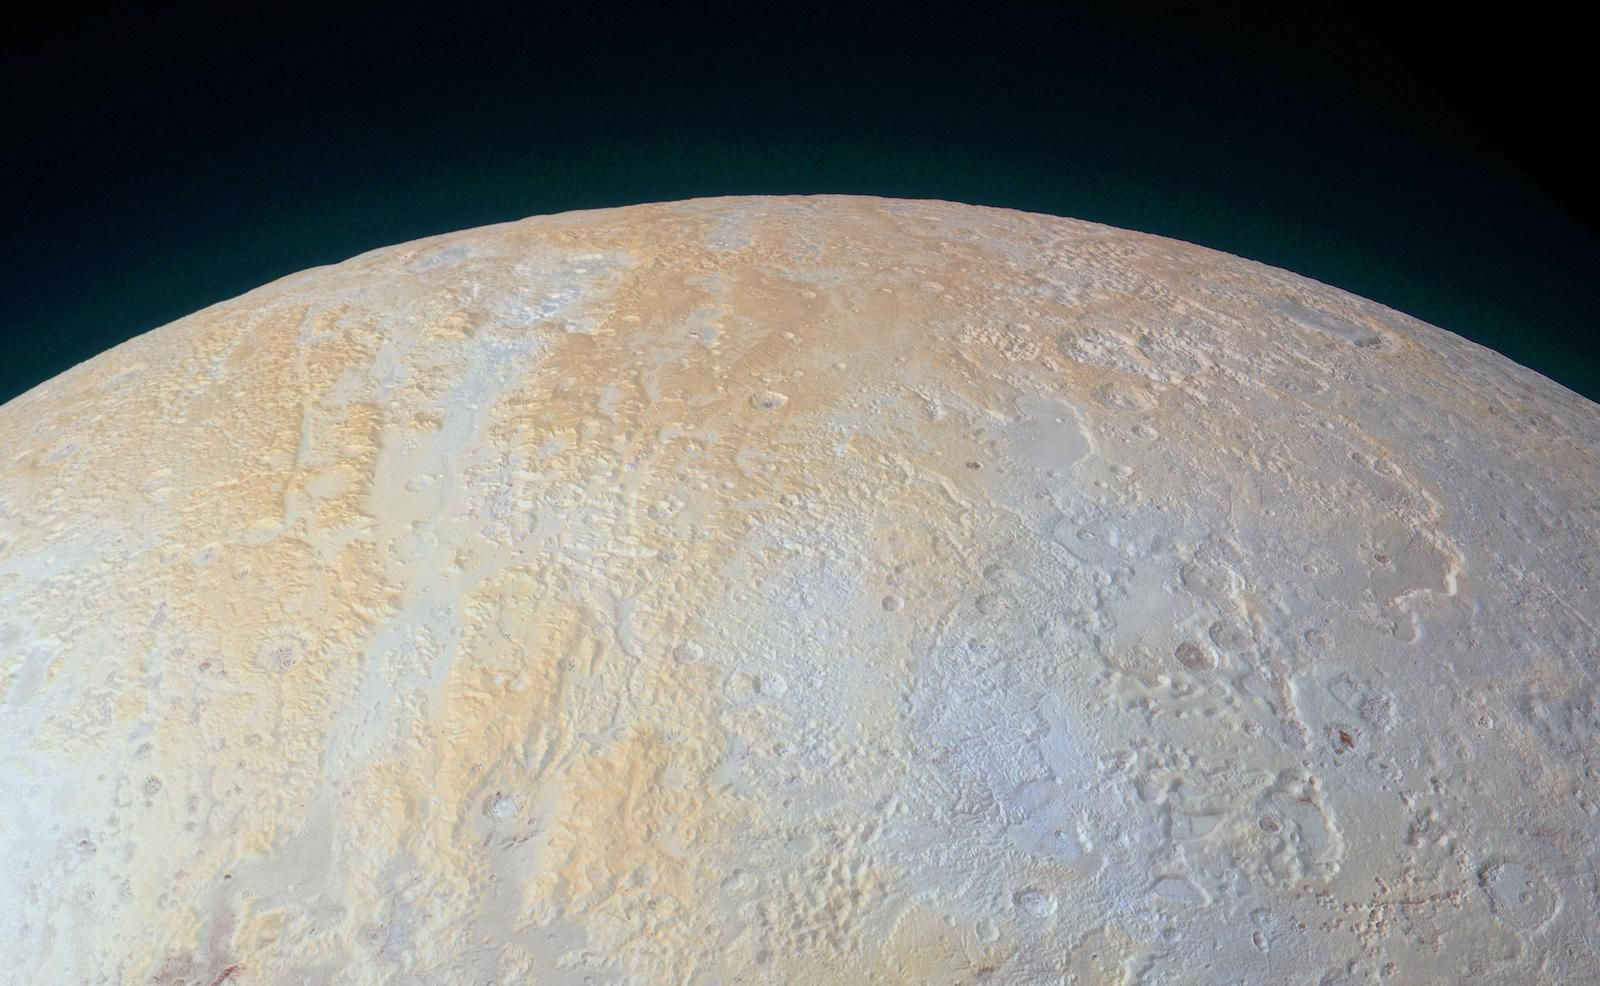 The Frozen Canyons of Pluto's North Pole (NASA/JHUAPL/SwRI)